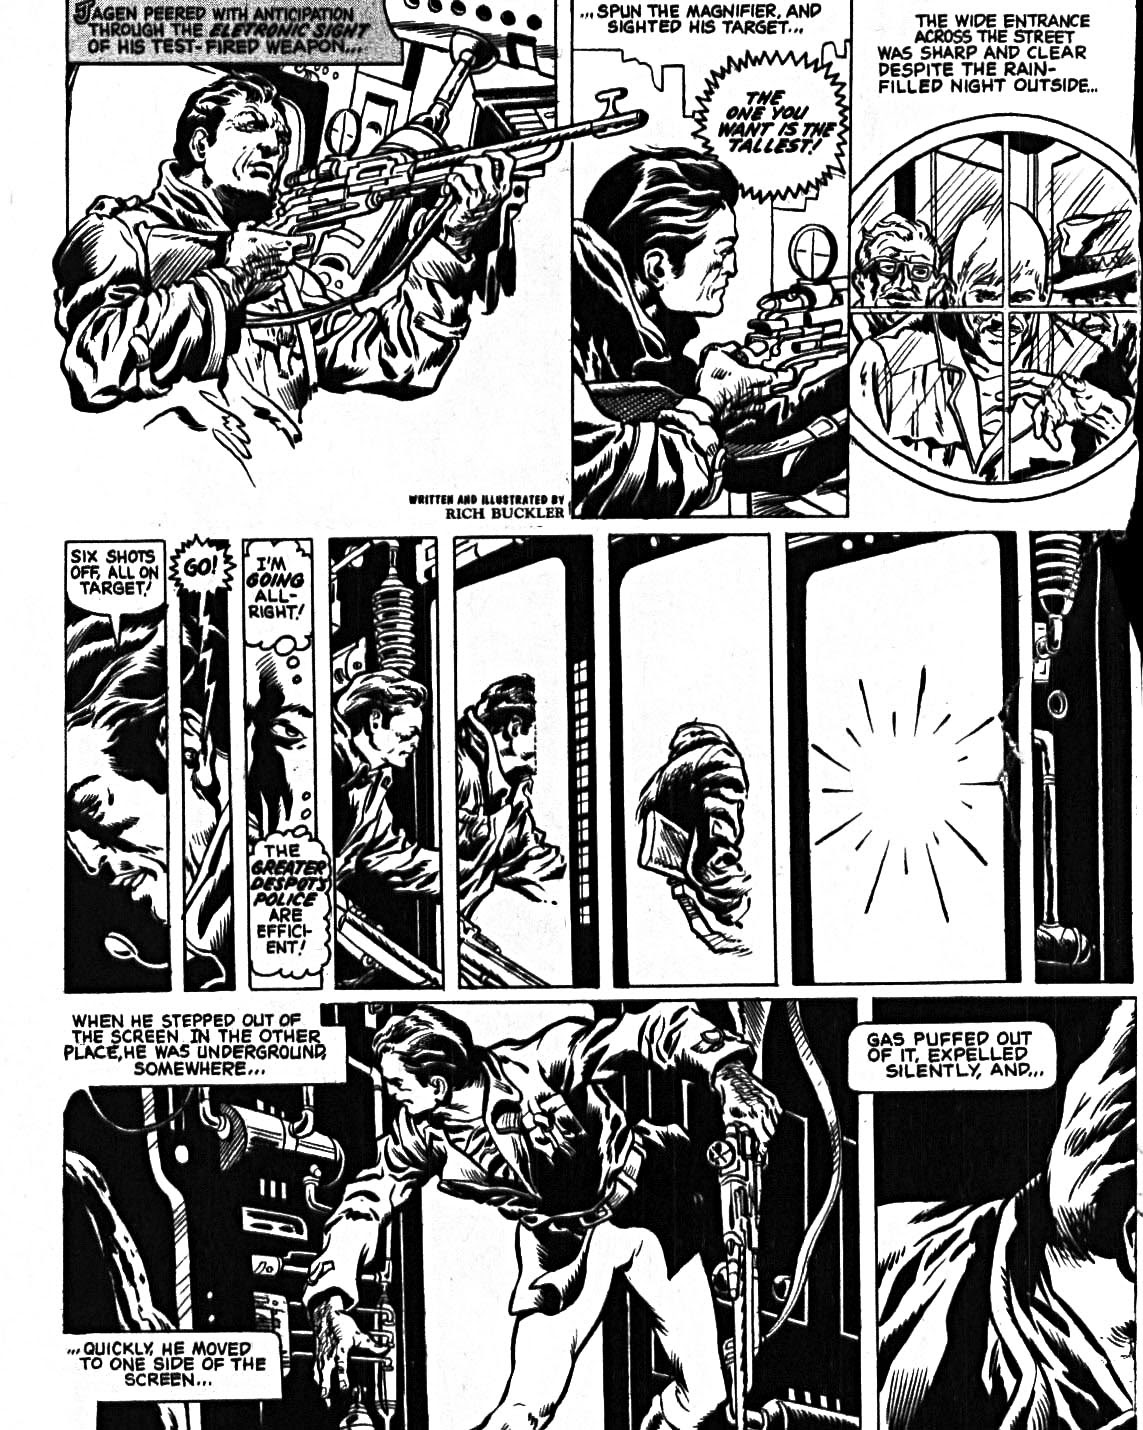 Scream (1973) issue 8 - Page 34